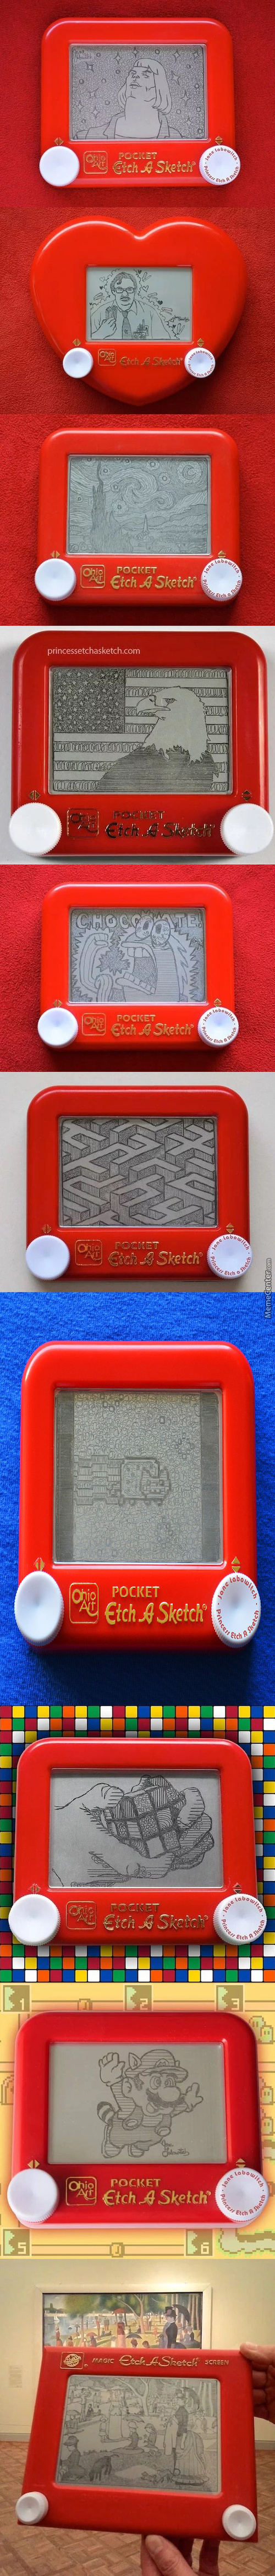 Art Of The Etch A Sketch By Jane Labowitch